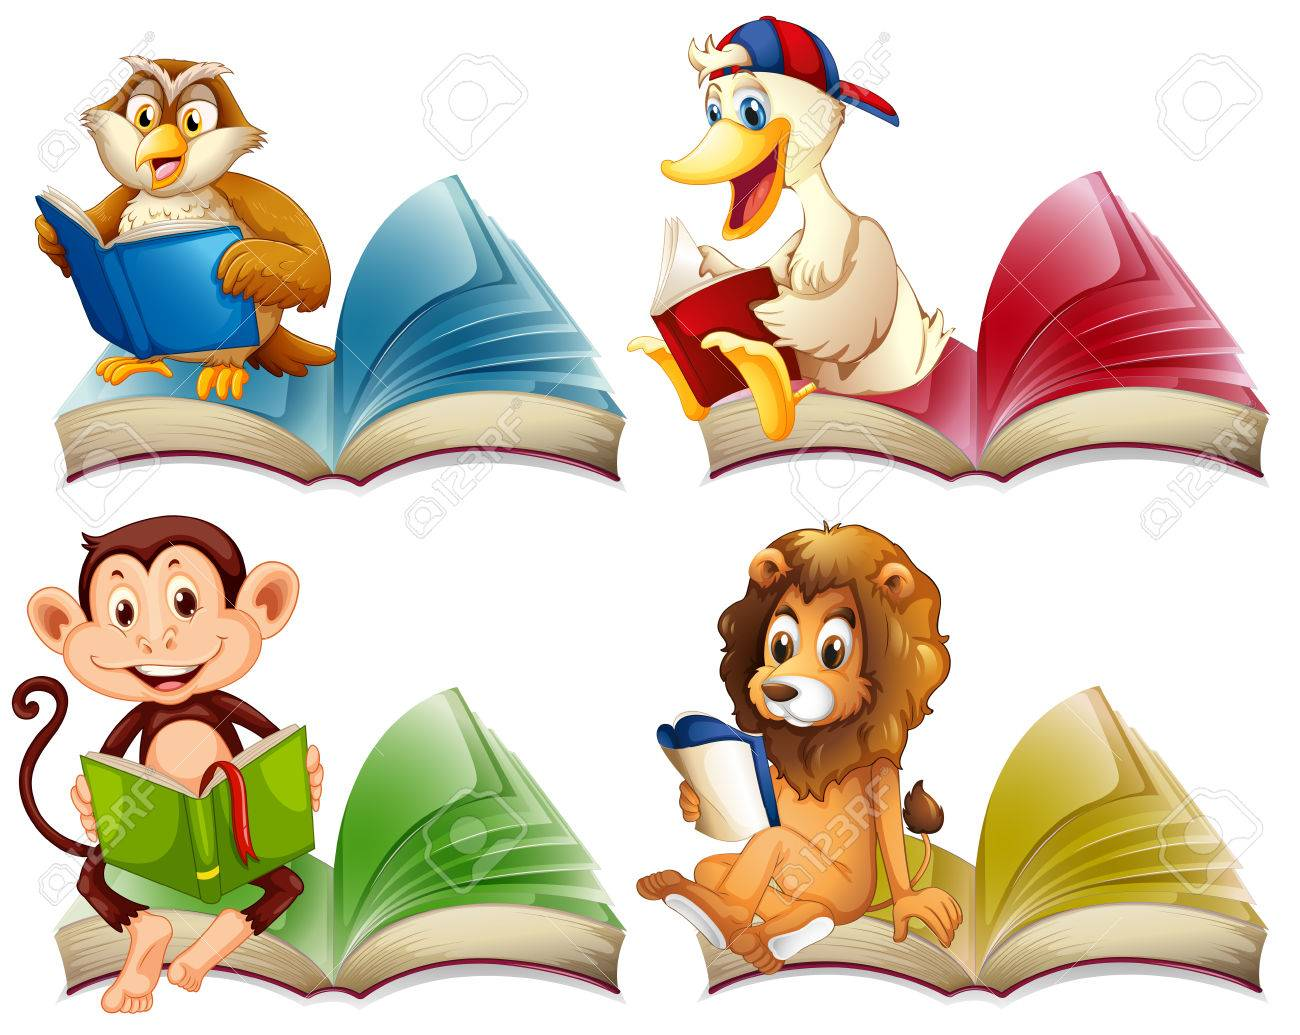 Wild Animals Reading Books Illustration Royalty Free Cliparts Vectors And Stock Illustration Image 51020337